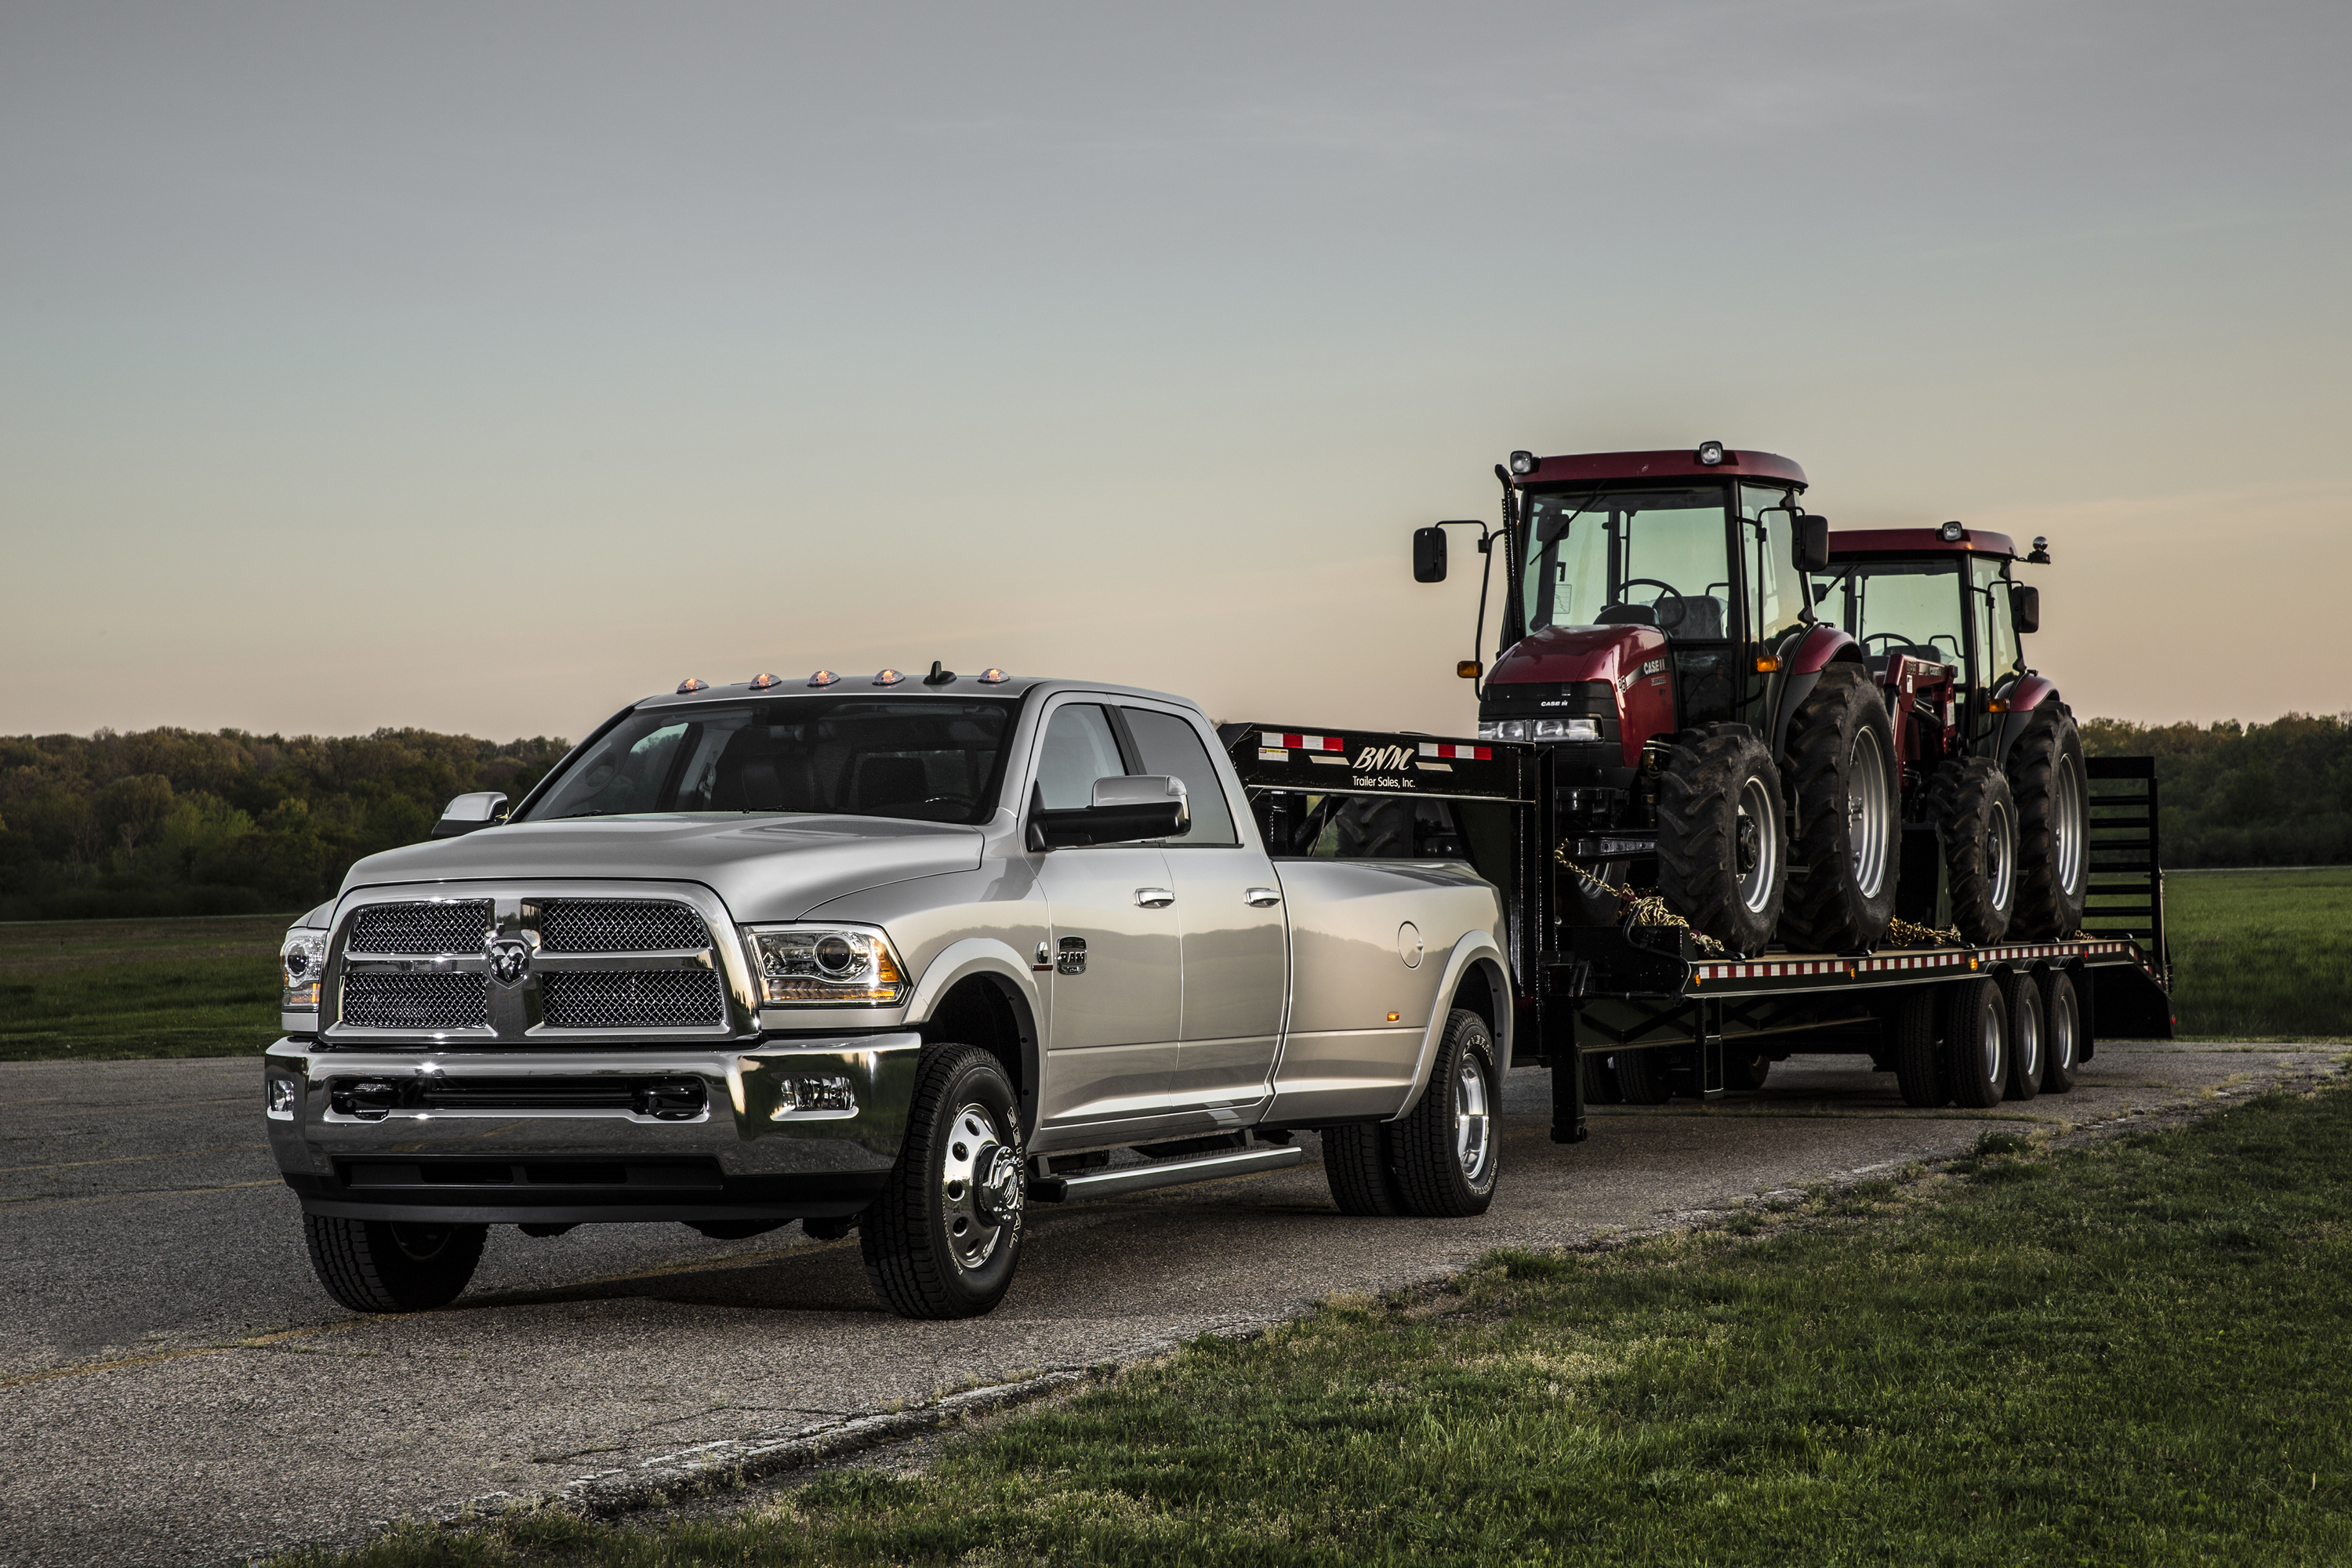 2014 Ram Heavy Duty — The King of Capability Offers Exclusive Air